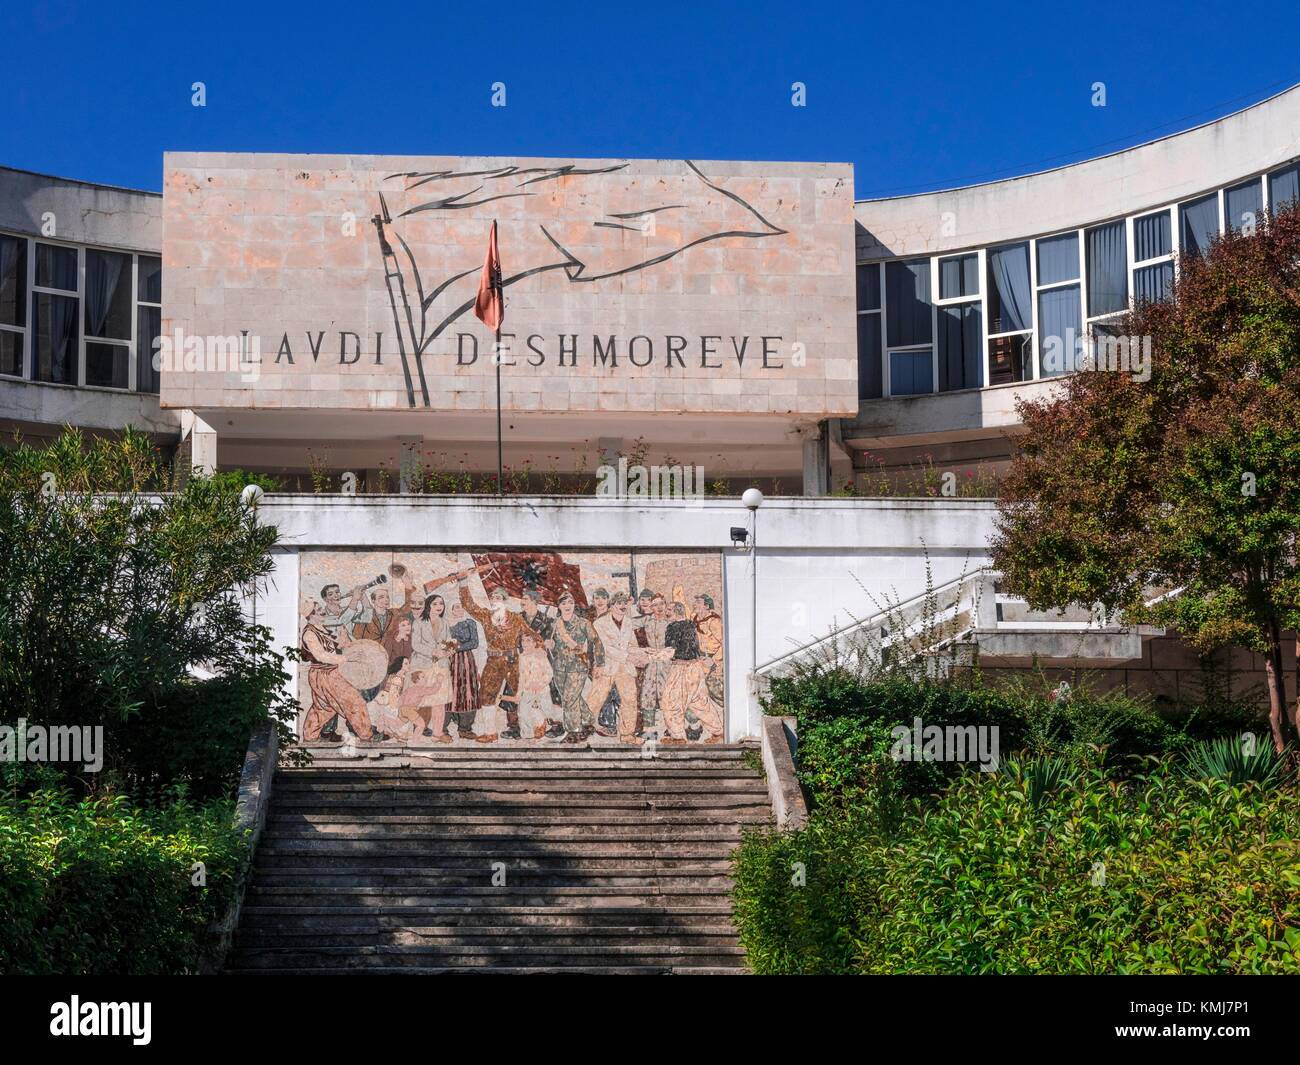 Albania, Durrés- at the ''Lavdi Deshmoreve'', mosaic of the communist time, under Enver Hoxha - Stock Image